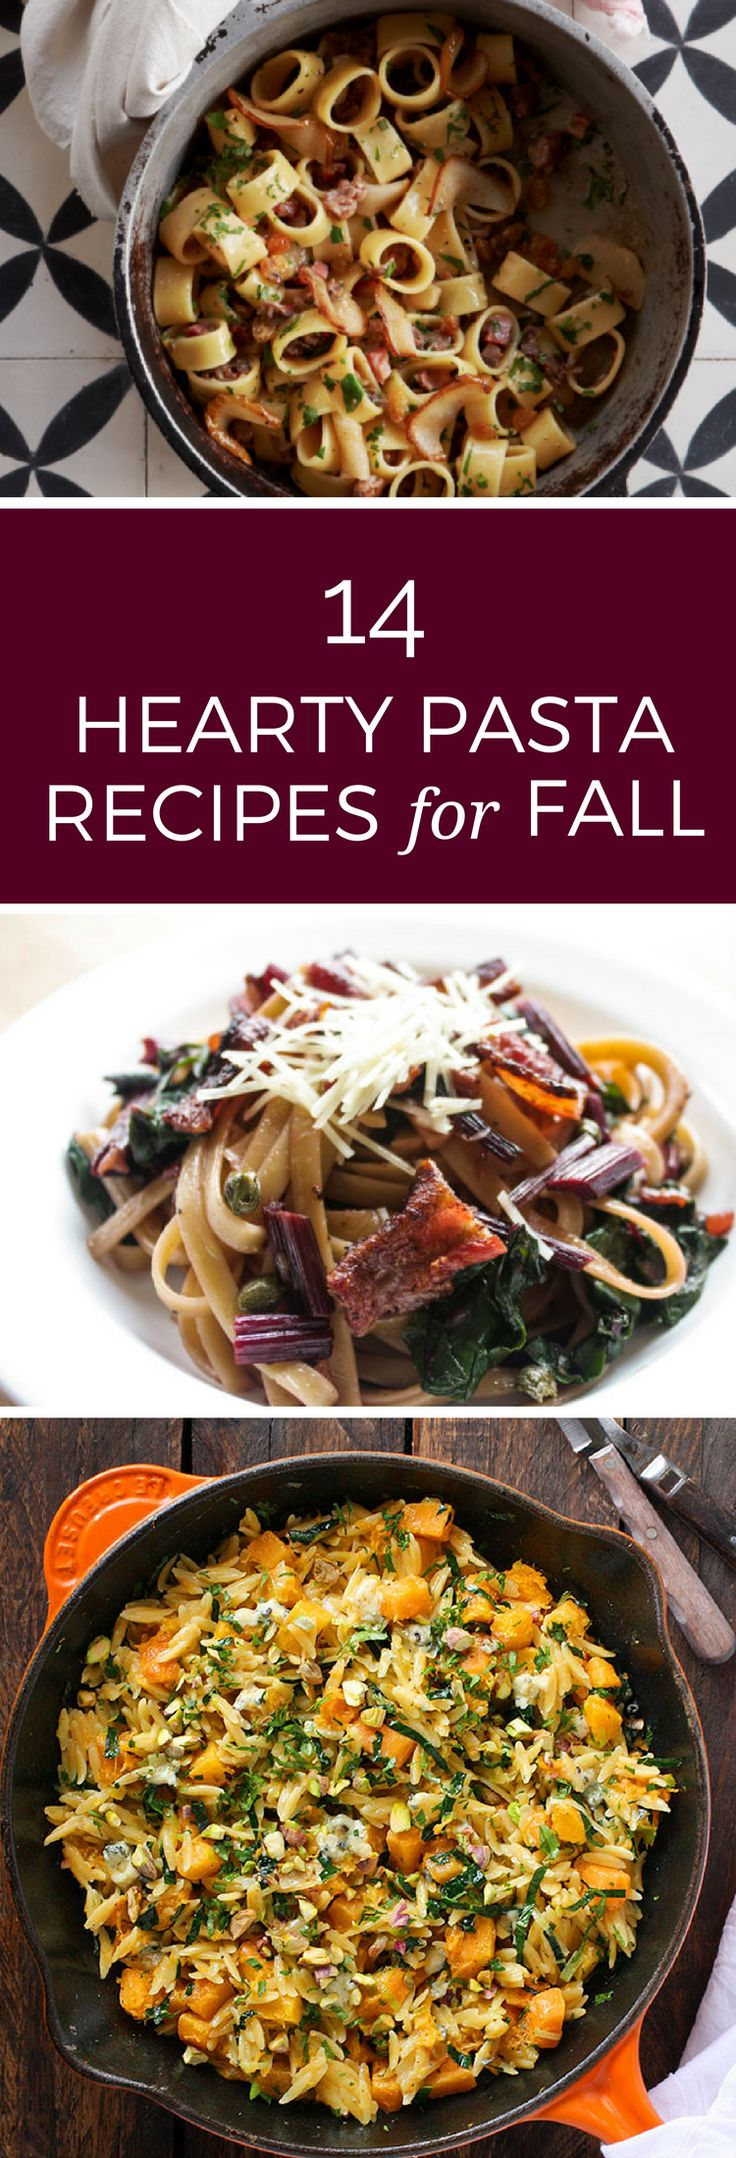 Pasta is the perfect comforting meal for fall. These 14 autumn-inspired recipes are hearty and great for a busy weeknight or family gathering!